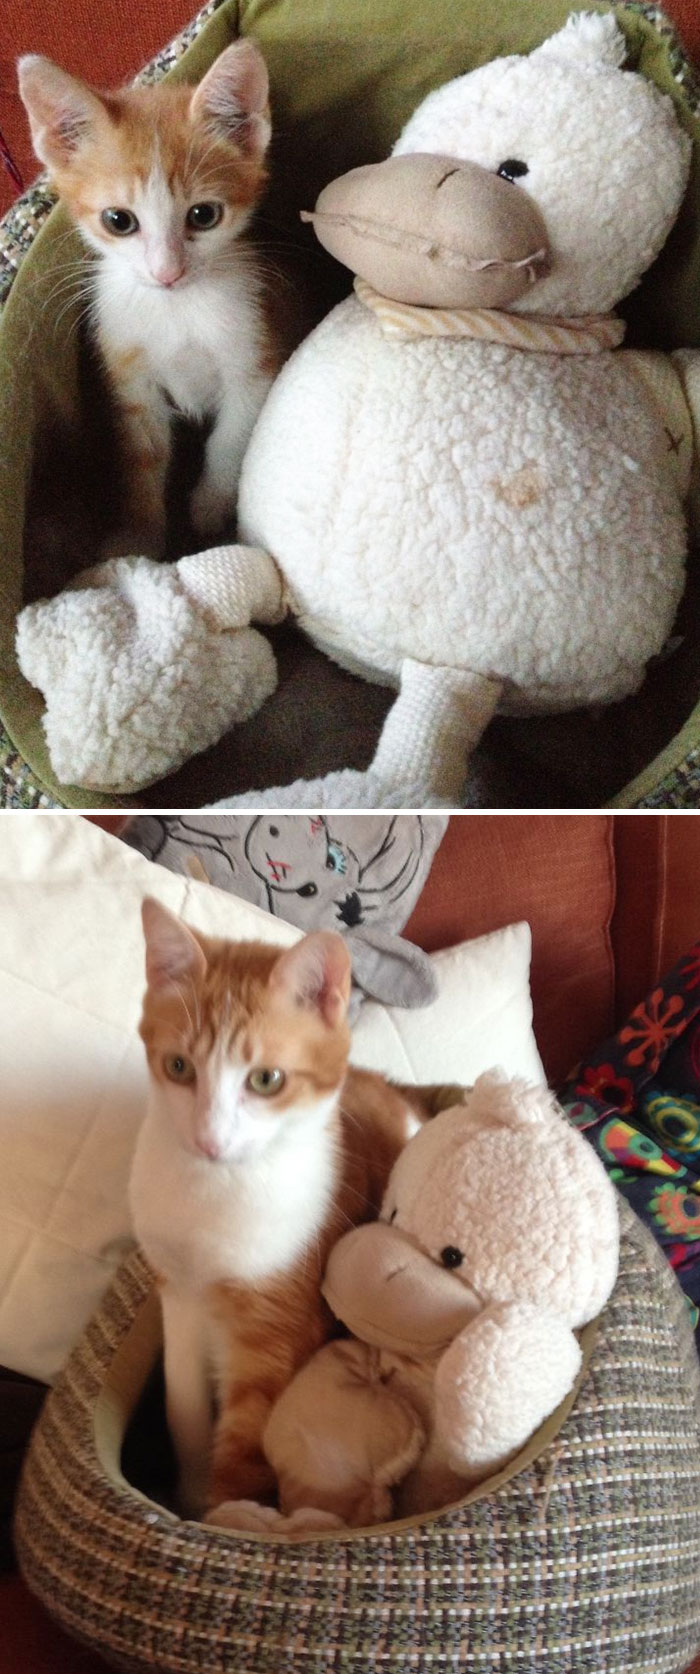 Teddy And The Duck - 2 Years On